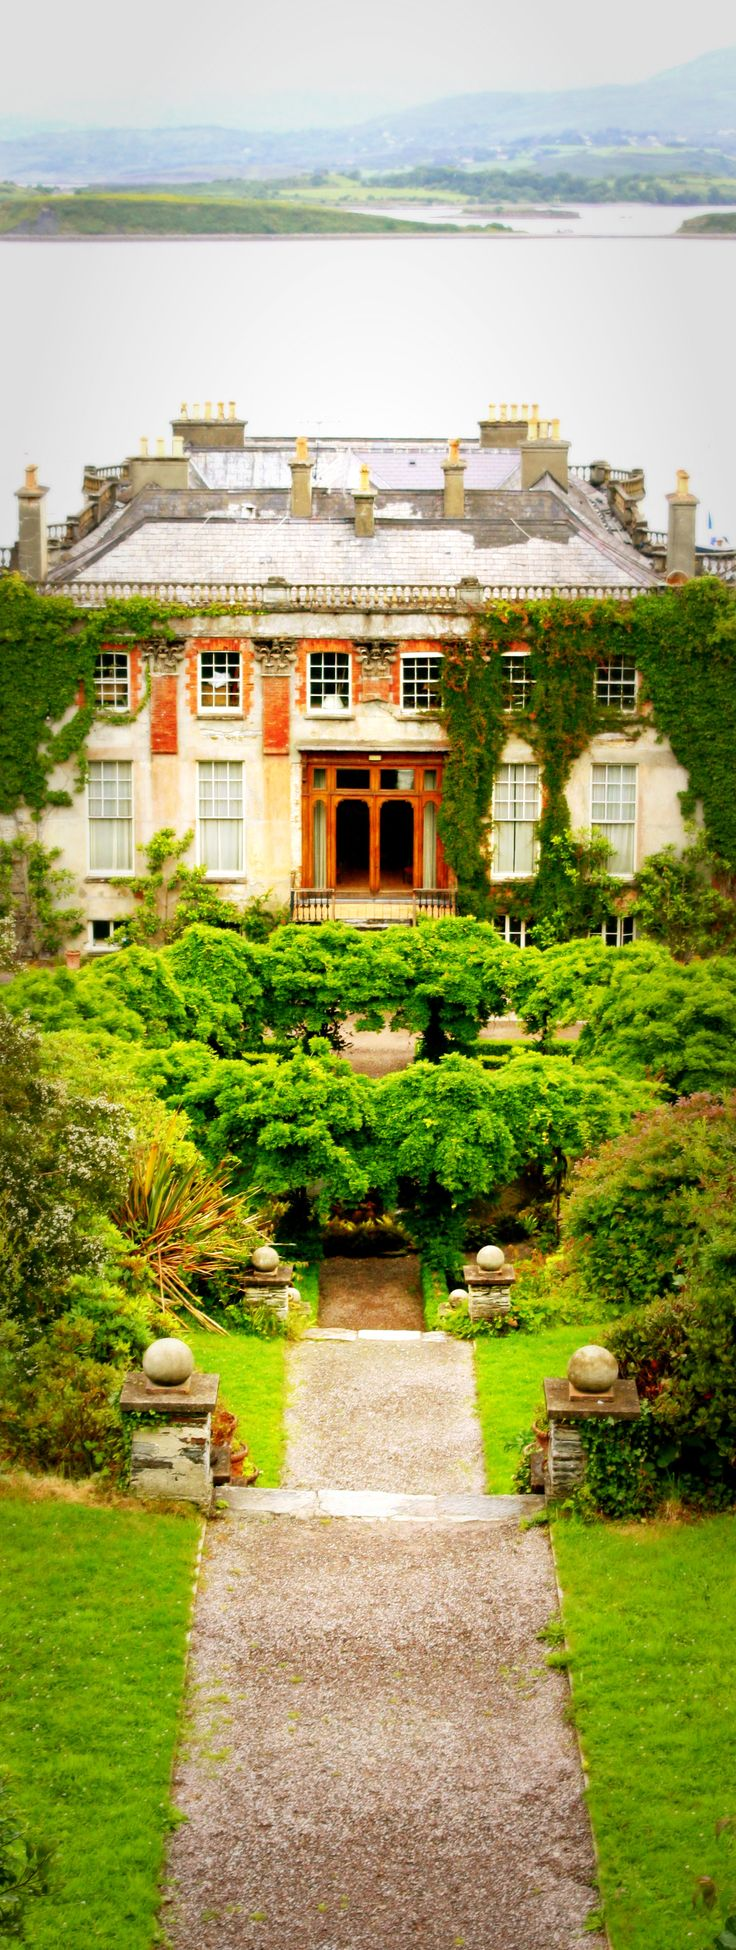 Ireland bantry house beautiful places in ireland and for Bantry house